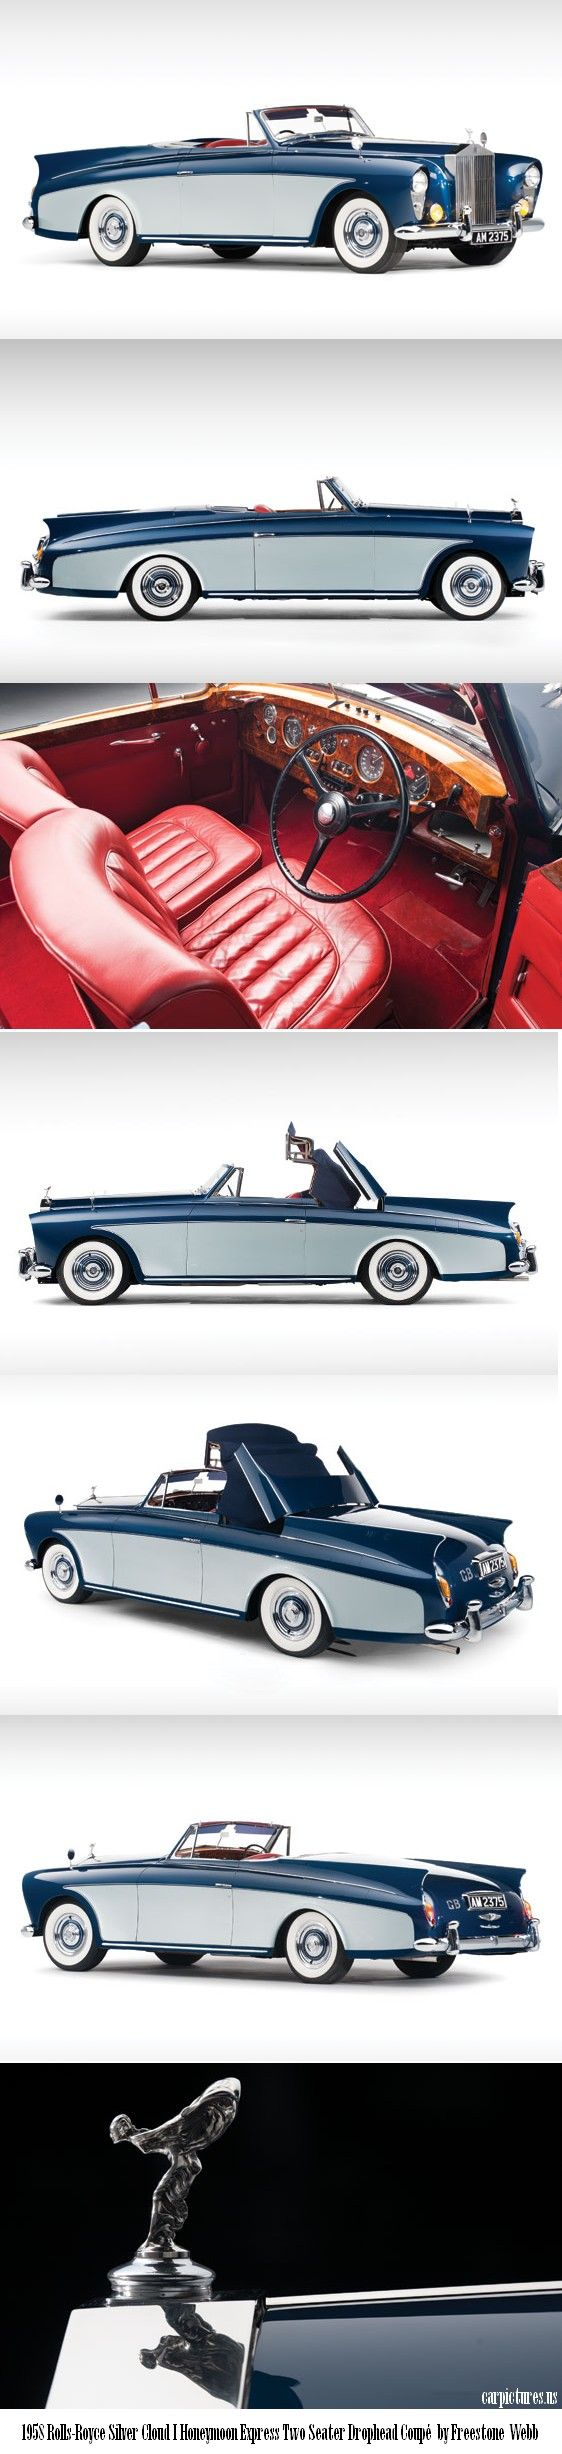 1958 #Rolls-Royce Silver Cloud Honeymoon Express Two Seater Drophead Coupé. #ClassicCar #QuirkyRides